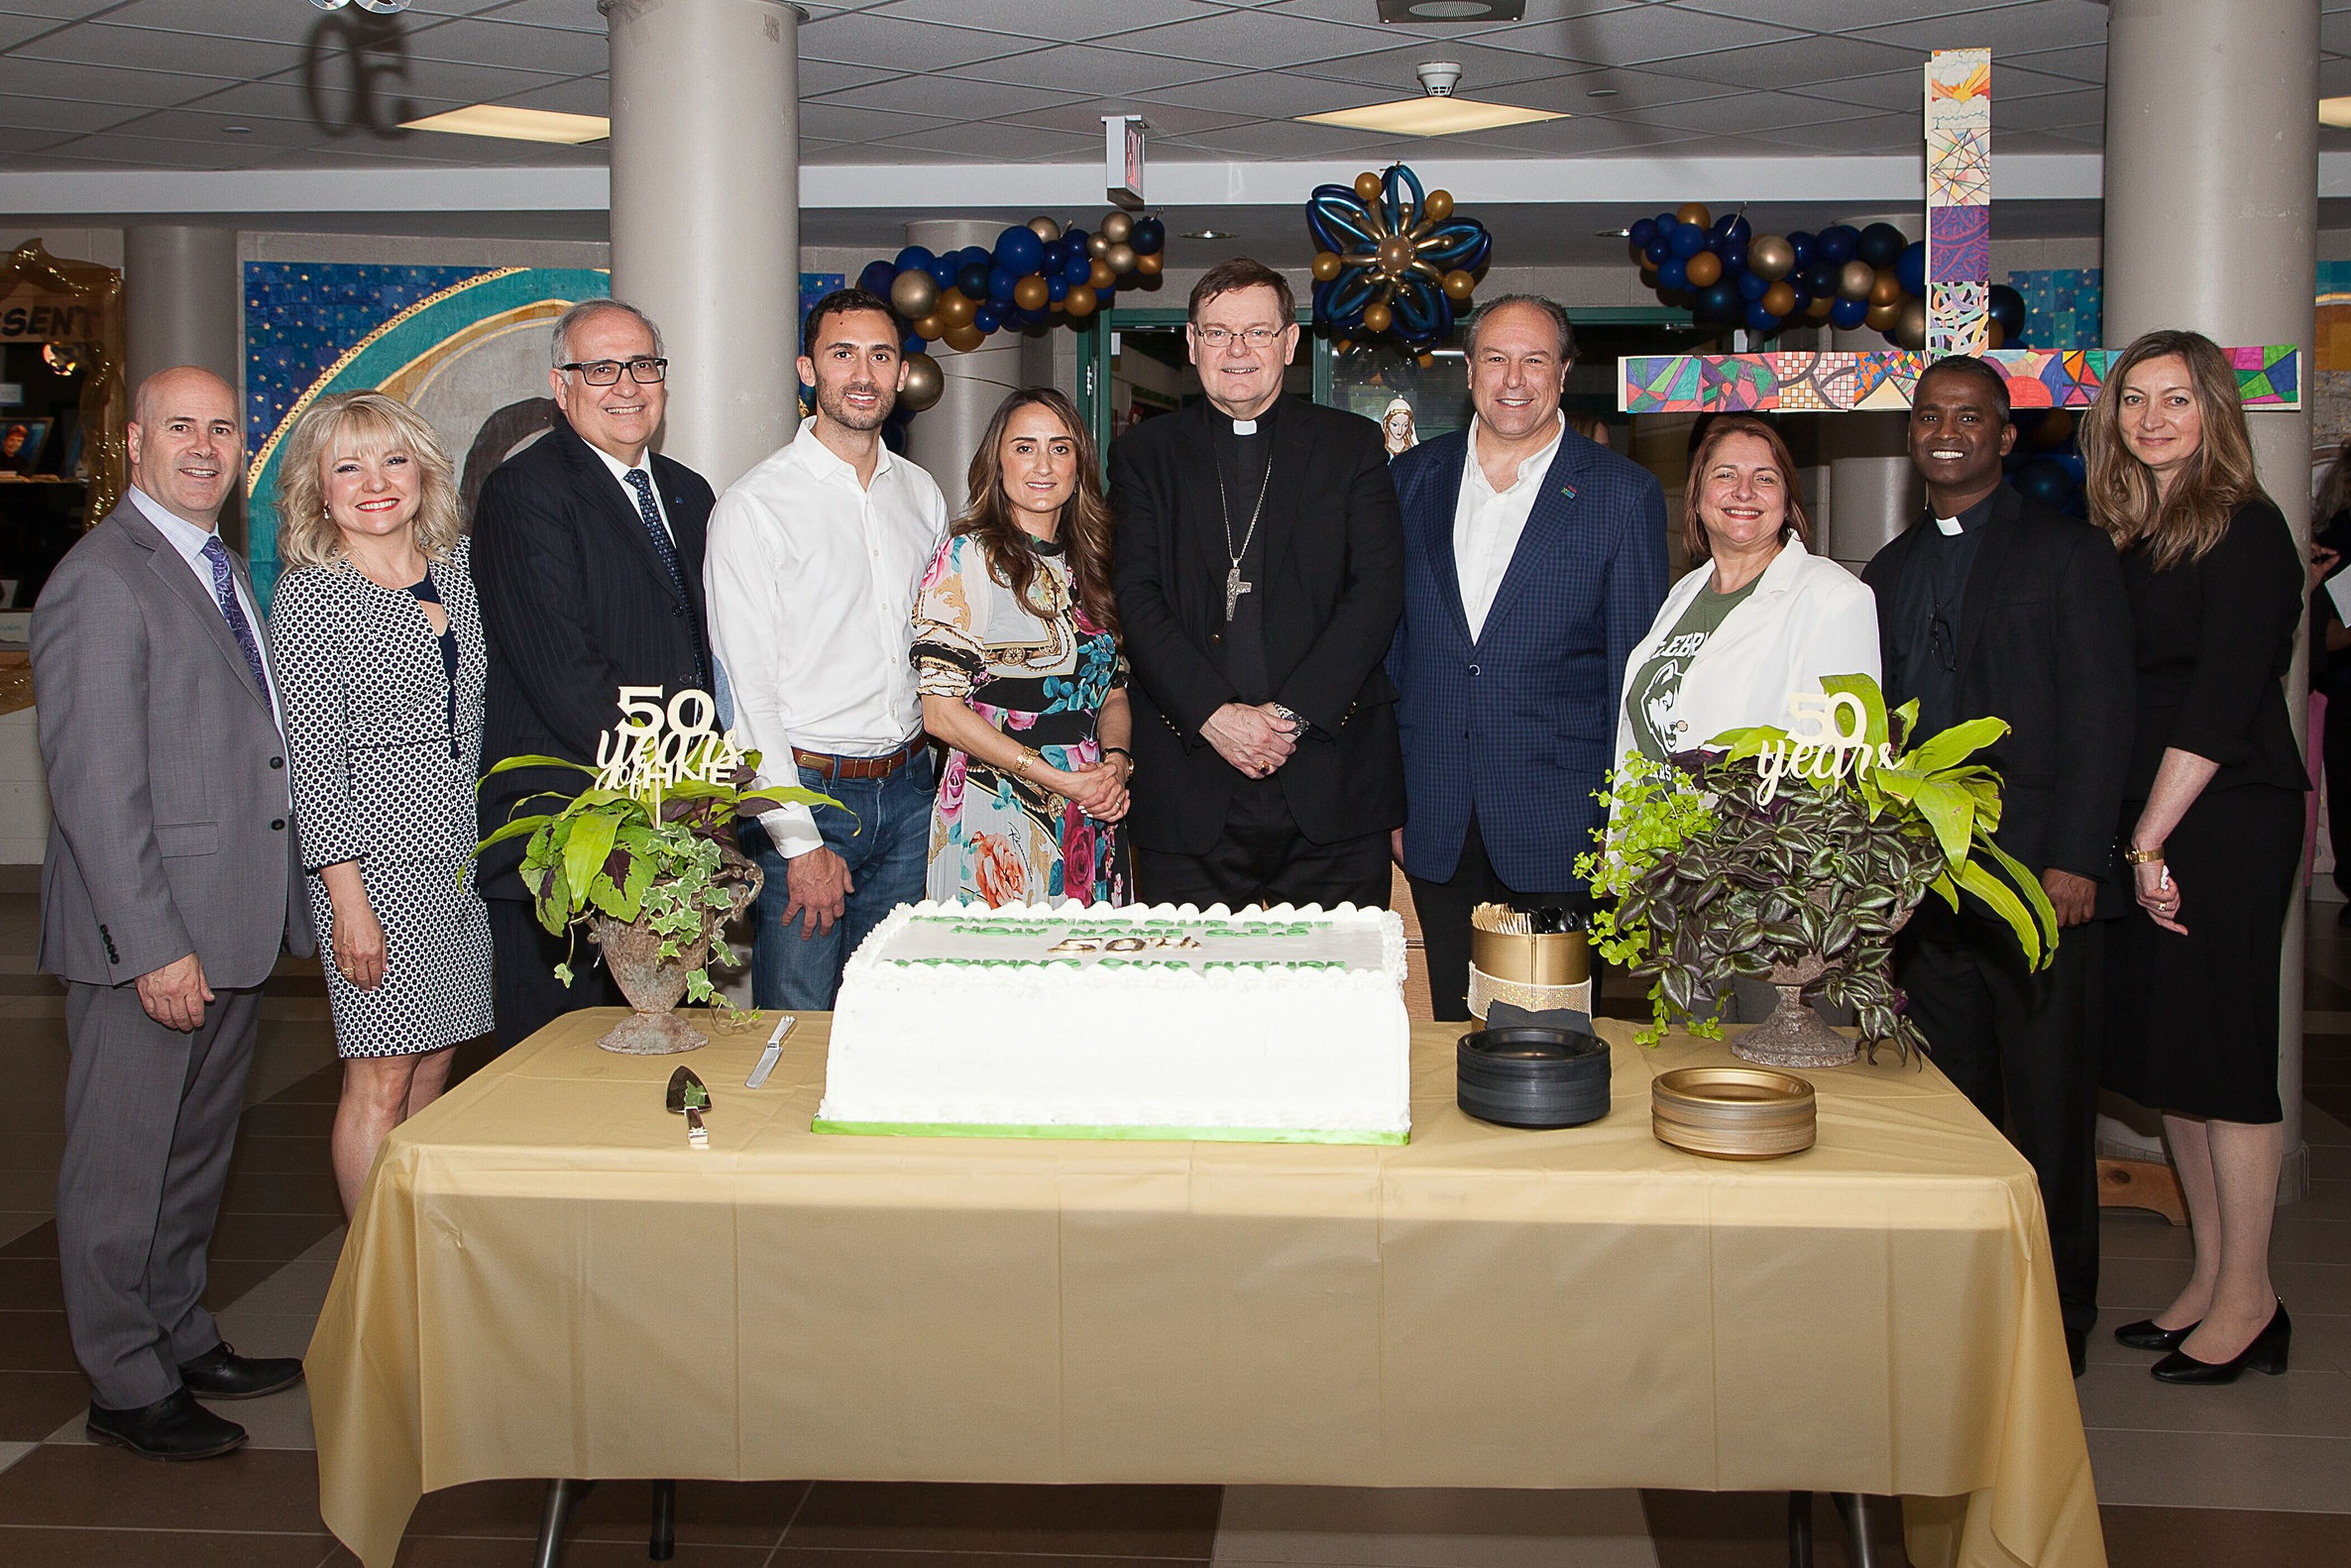 Celebrating the 50th Anniversary of Holy Name CES, King City